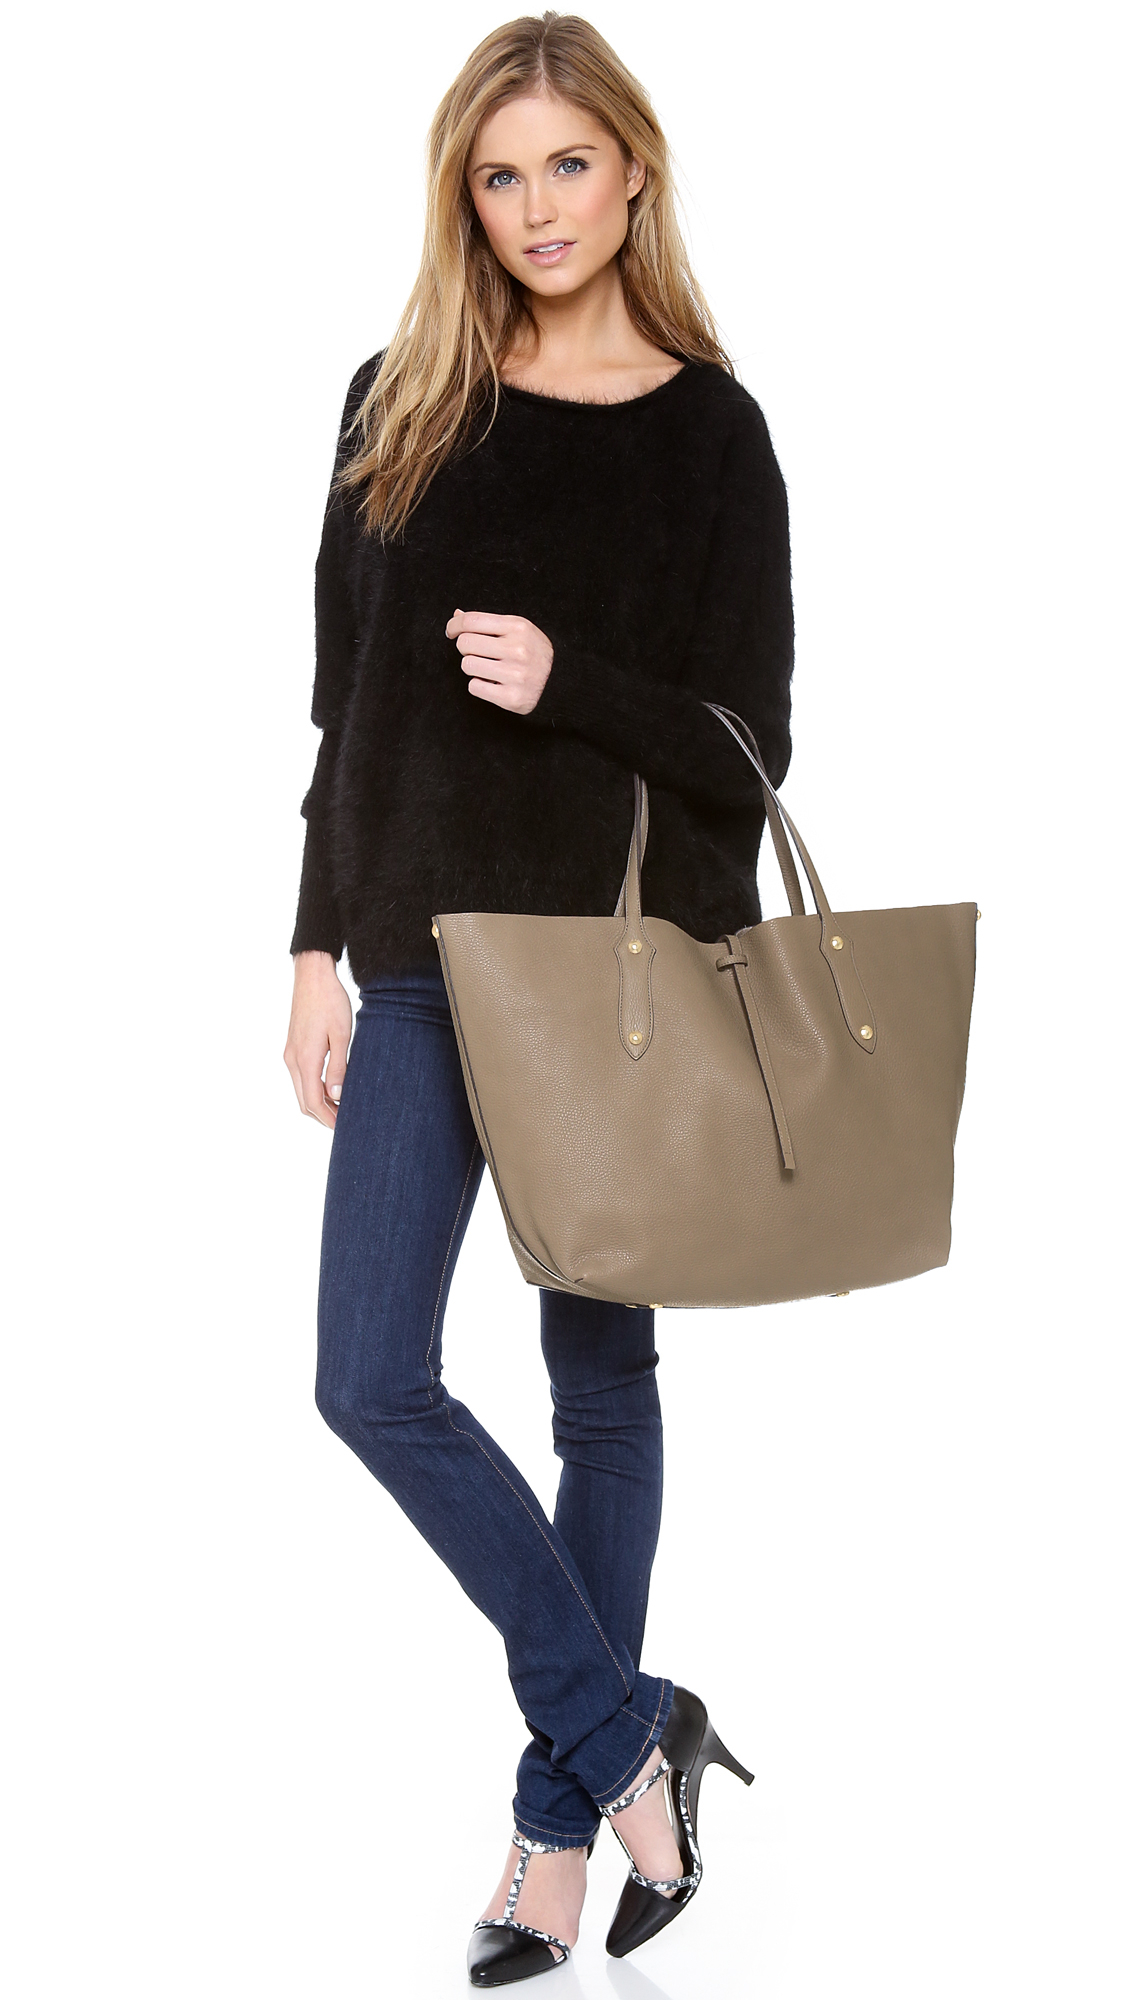 Annabel Ingall Large Isabella Tote in Gray - Lyst 1618ba30af66e